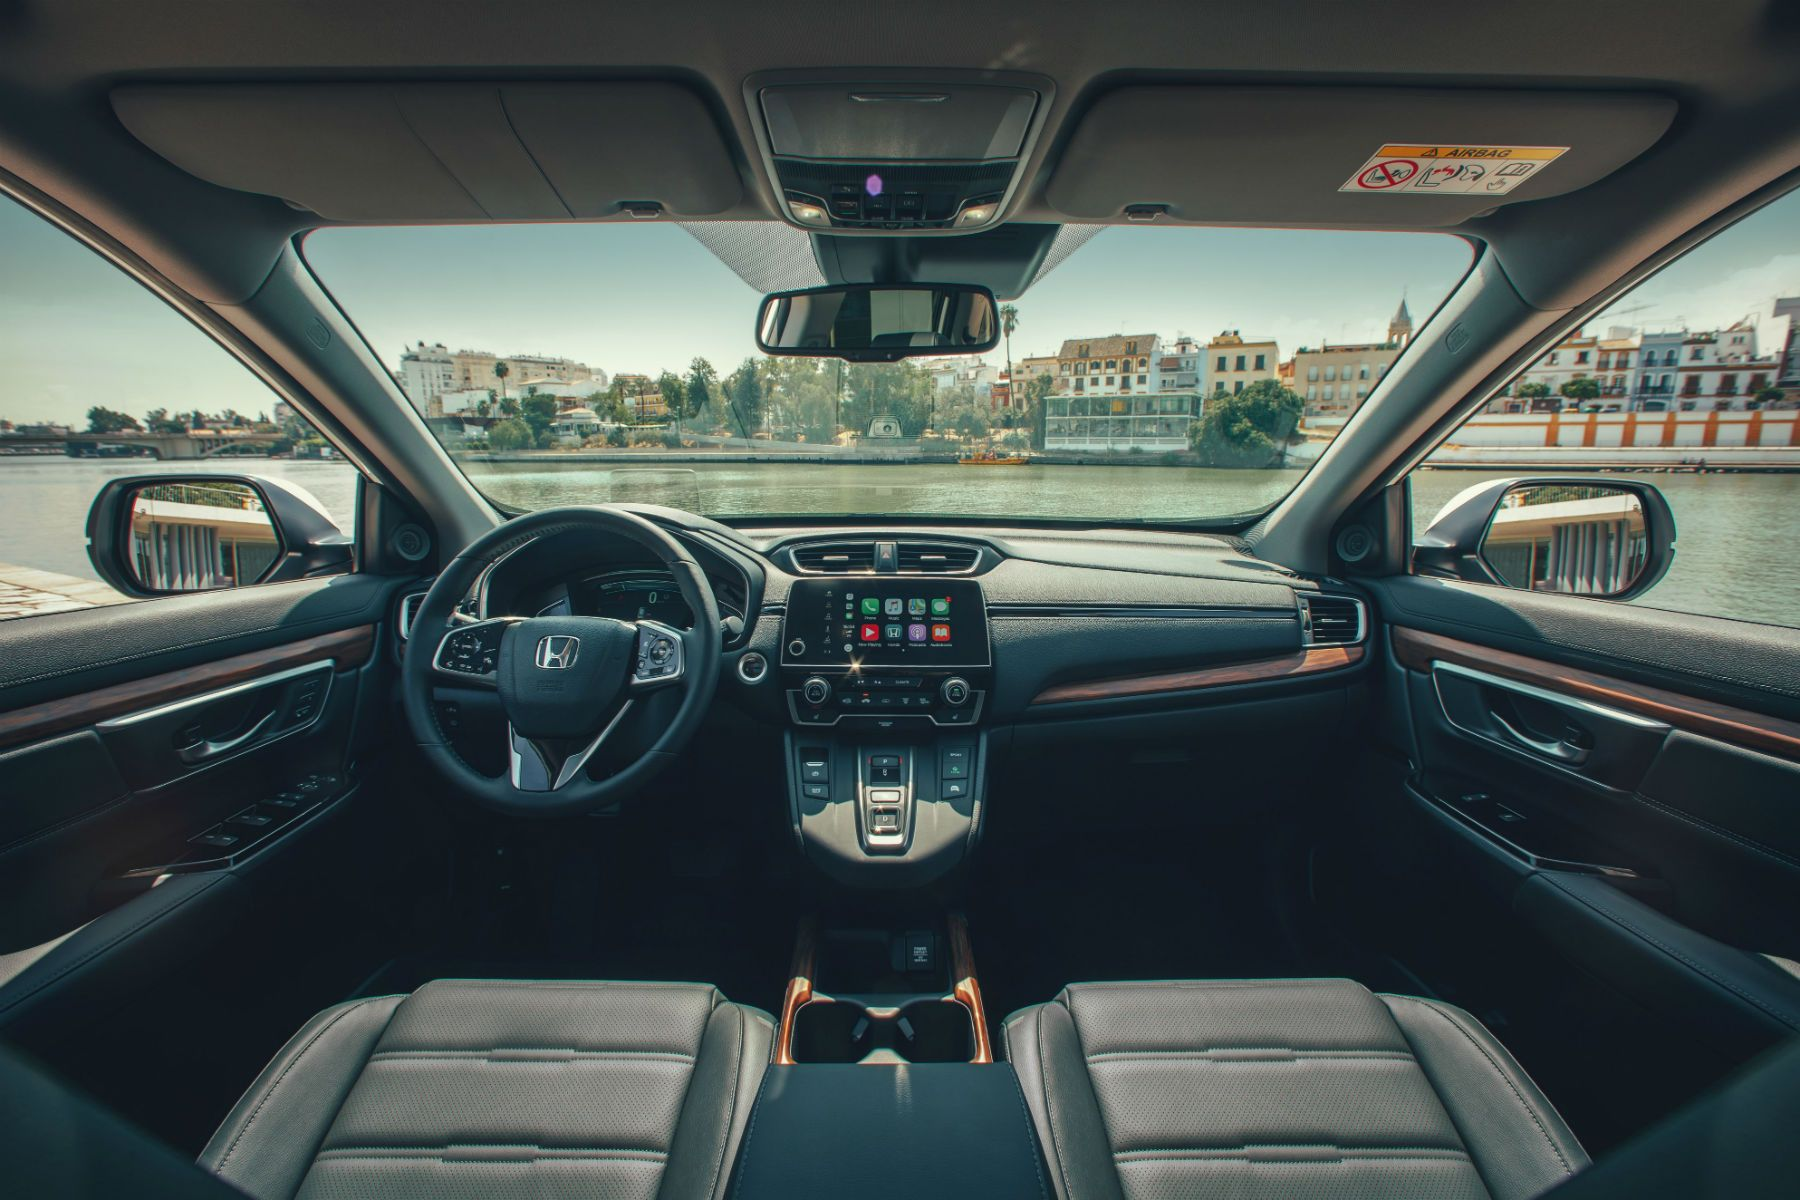 CR-V Hybrid interior .jpg (253 KB)